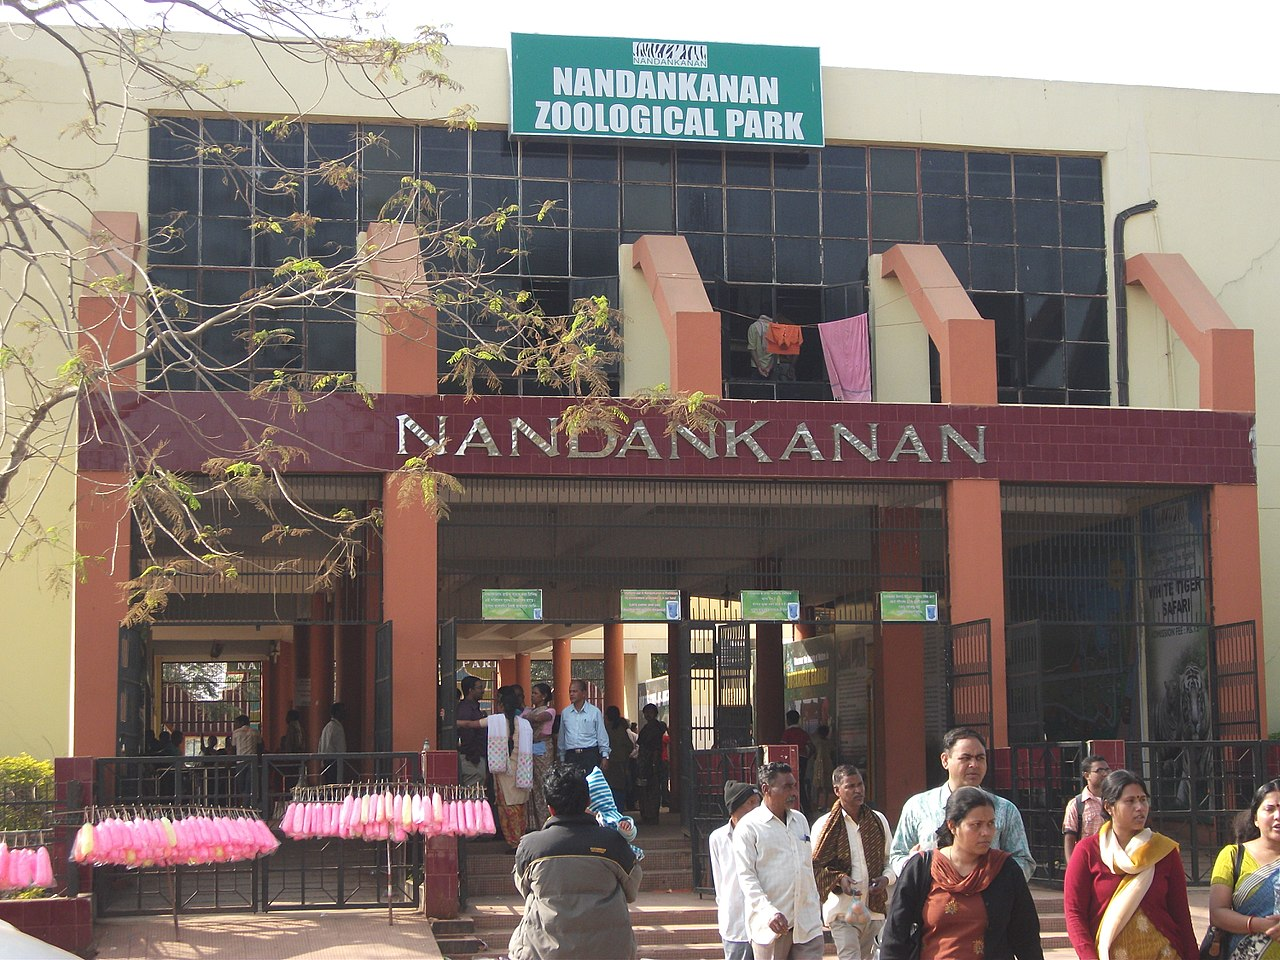 Nandankanan Zoological Park - Most Popular Place To Visit In Bhubaneswar